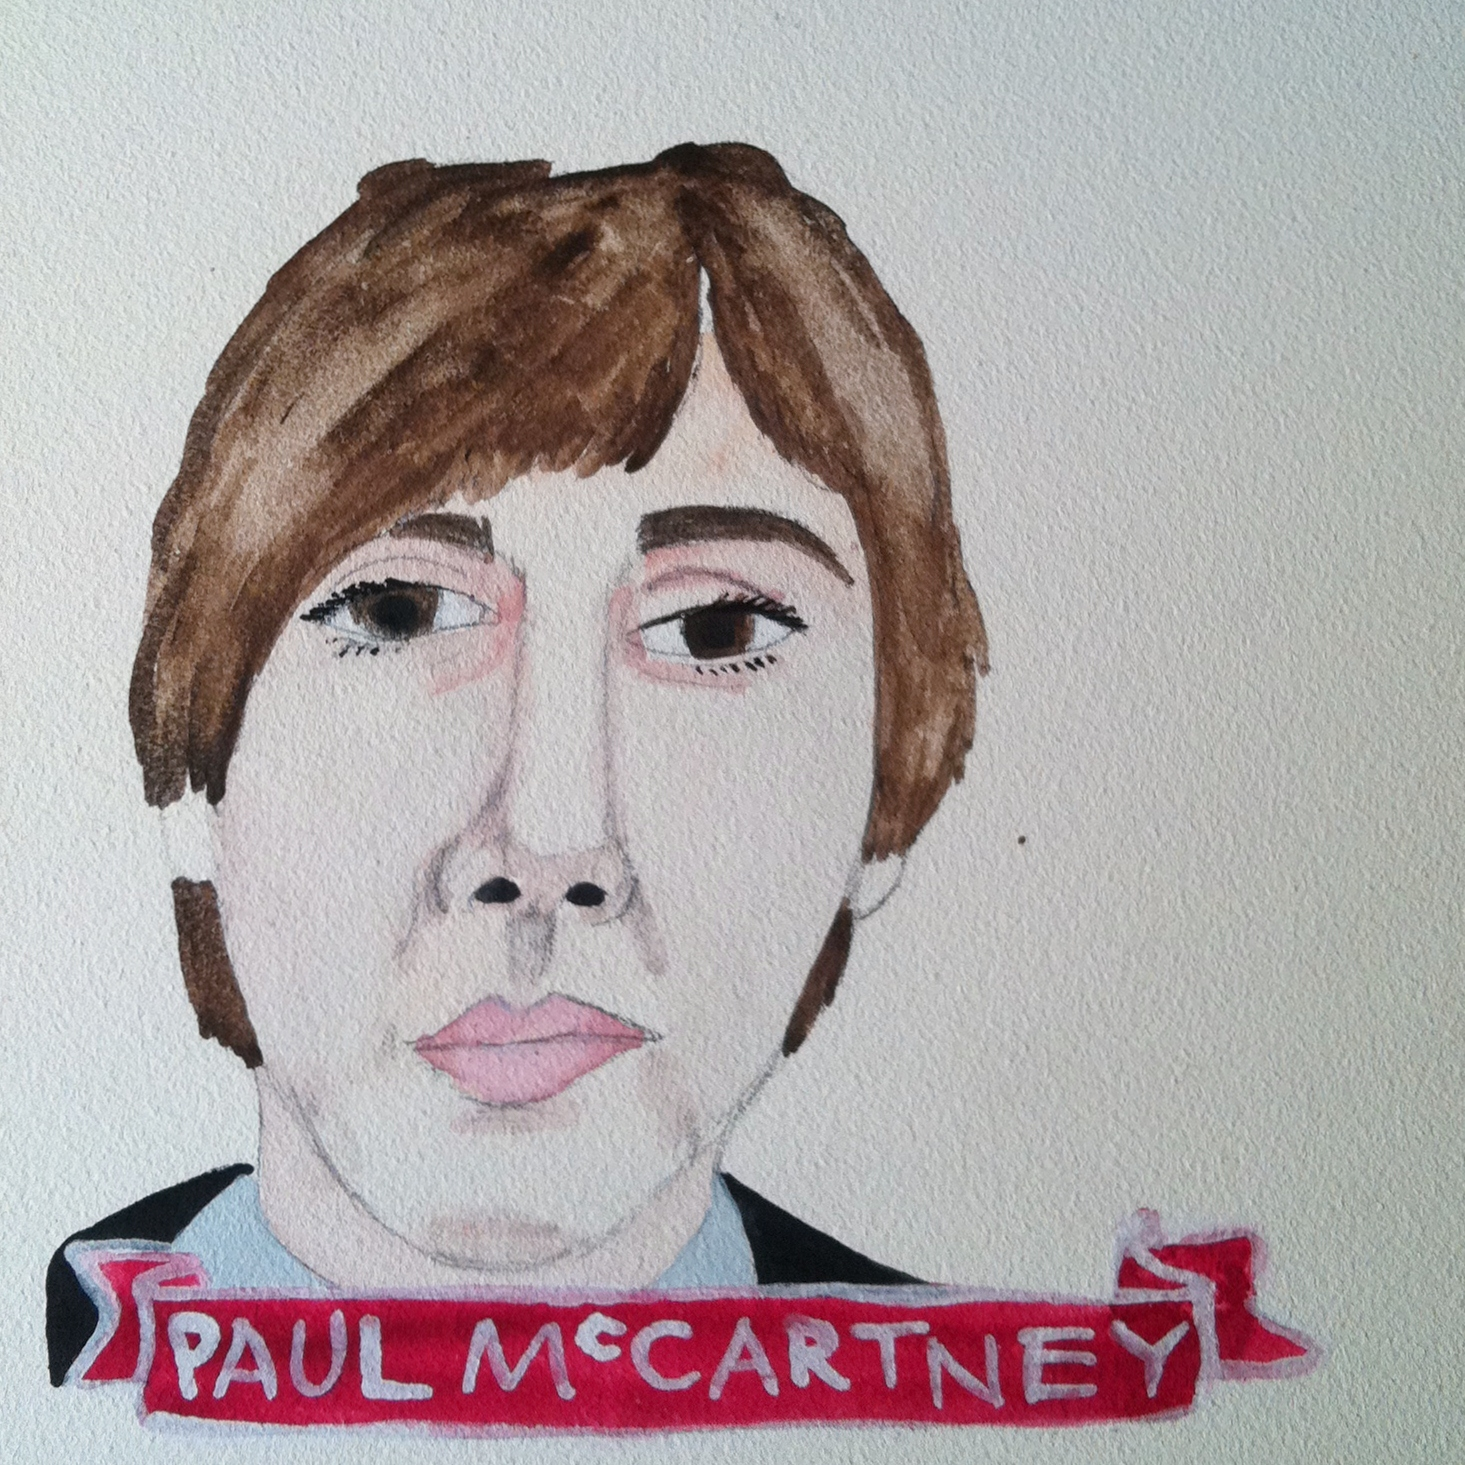 Talent Loves Company at Barbara Archer Gallery: 365 portraits by Lydia Walls - Paul McCartney